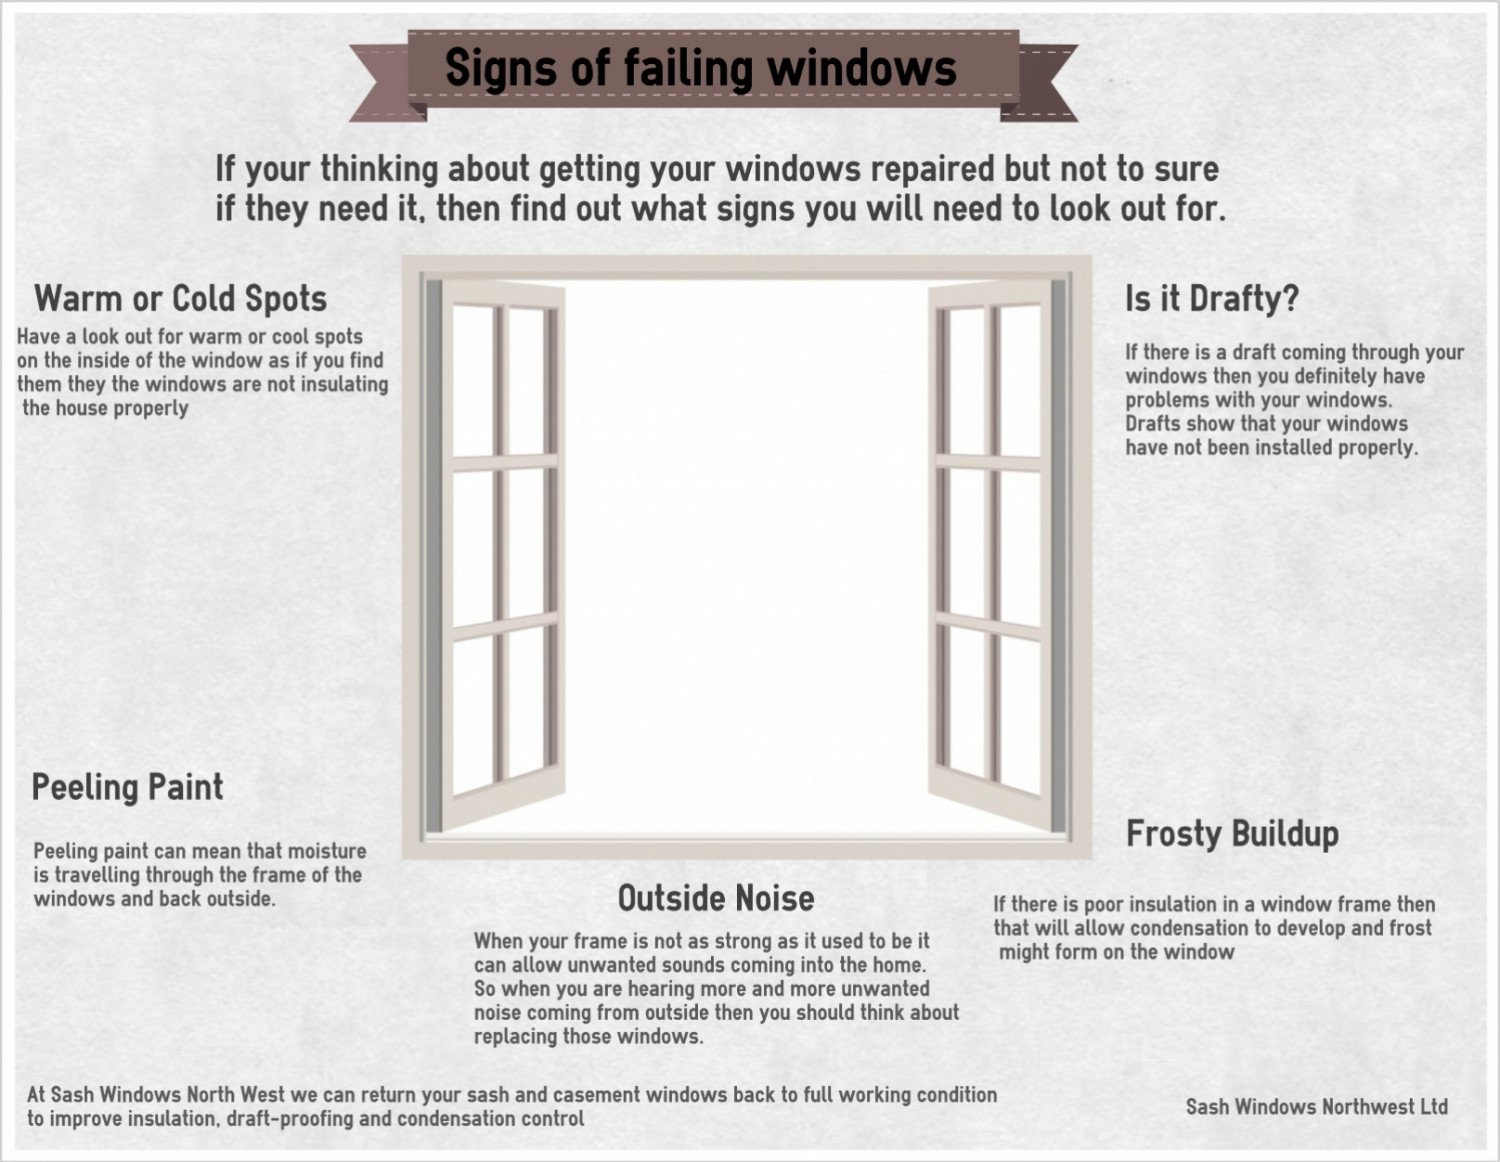 Signs of Failing Windows Infographic